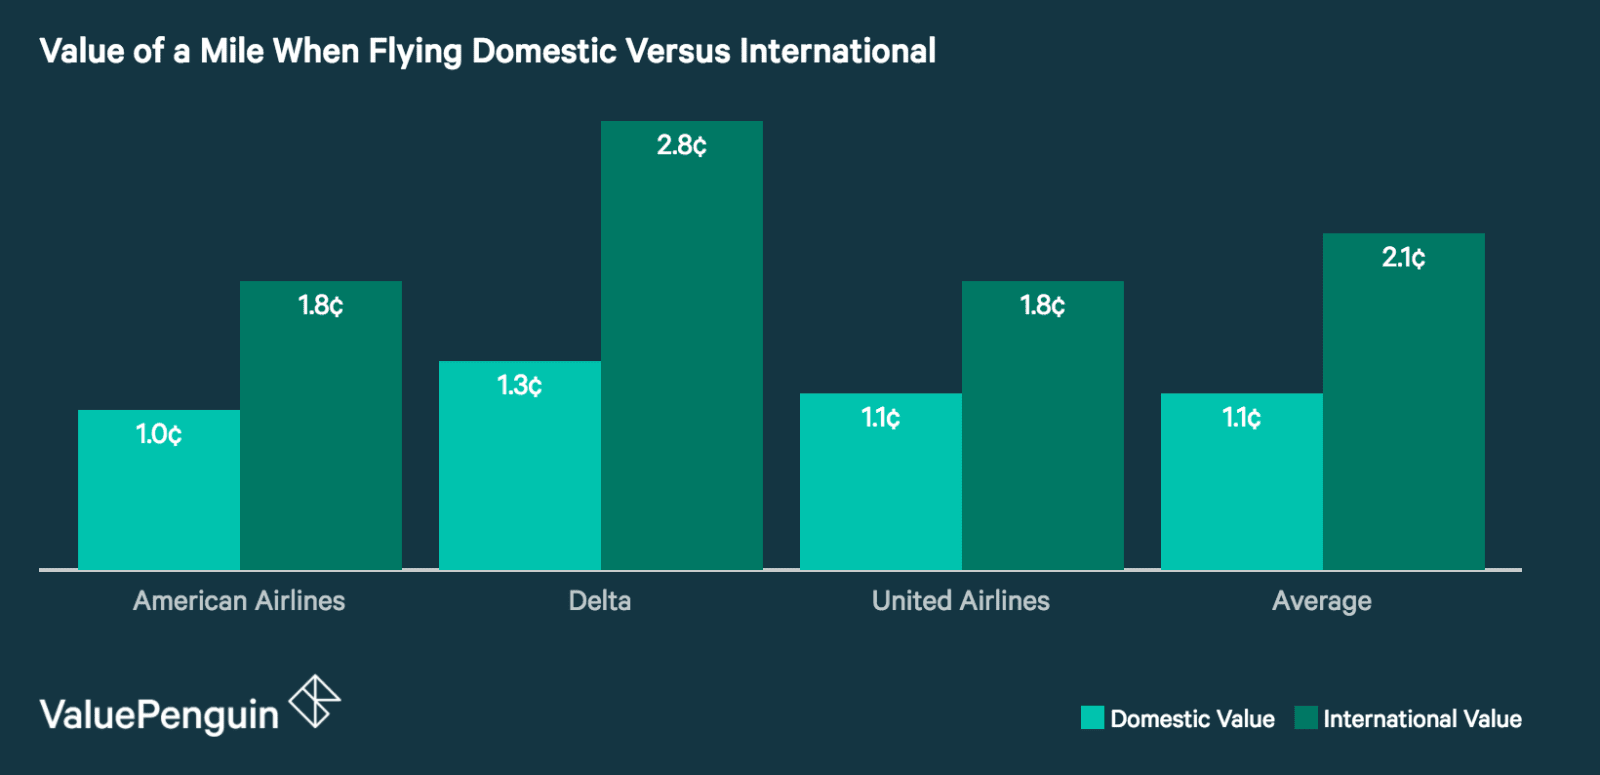 Are Miles Worth More When Flying Internationally?